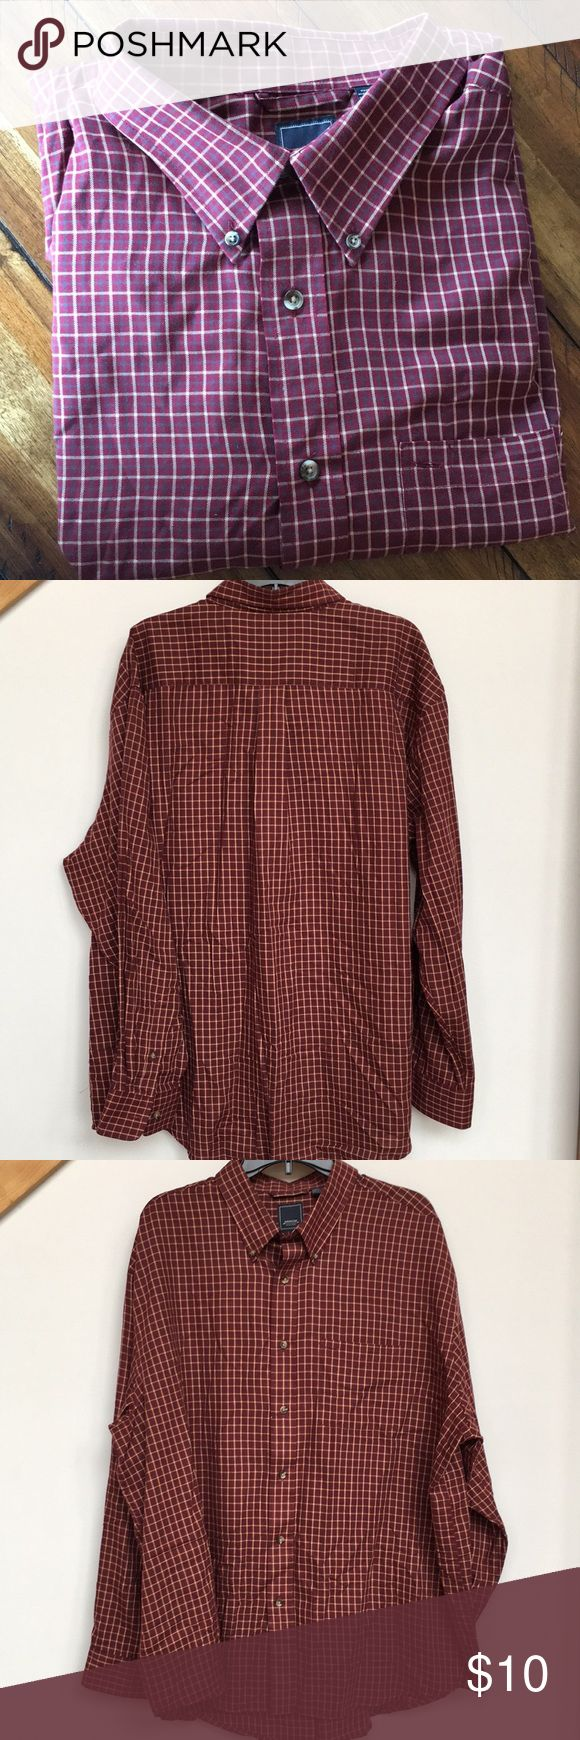 Men's Arrow shirt Arrow maroon and tan plaid casual button down shirt. Last picture more reflective of color and pattern. Arrow Shirts Casual Button Down Shirts